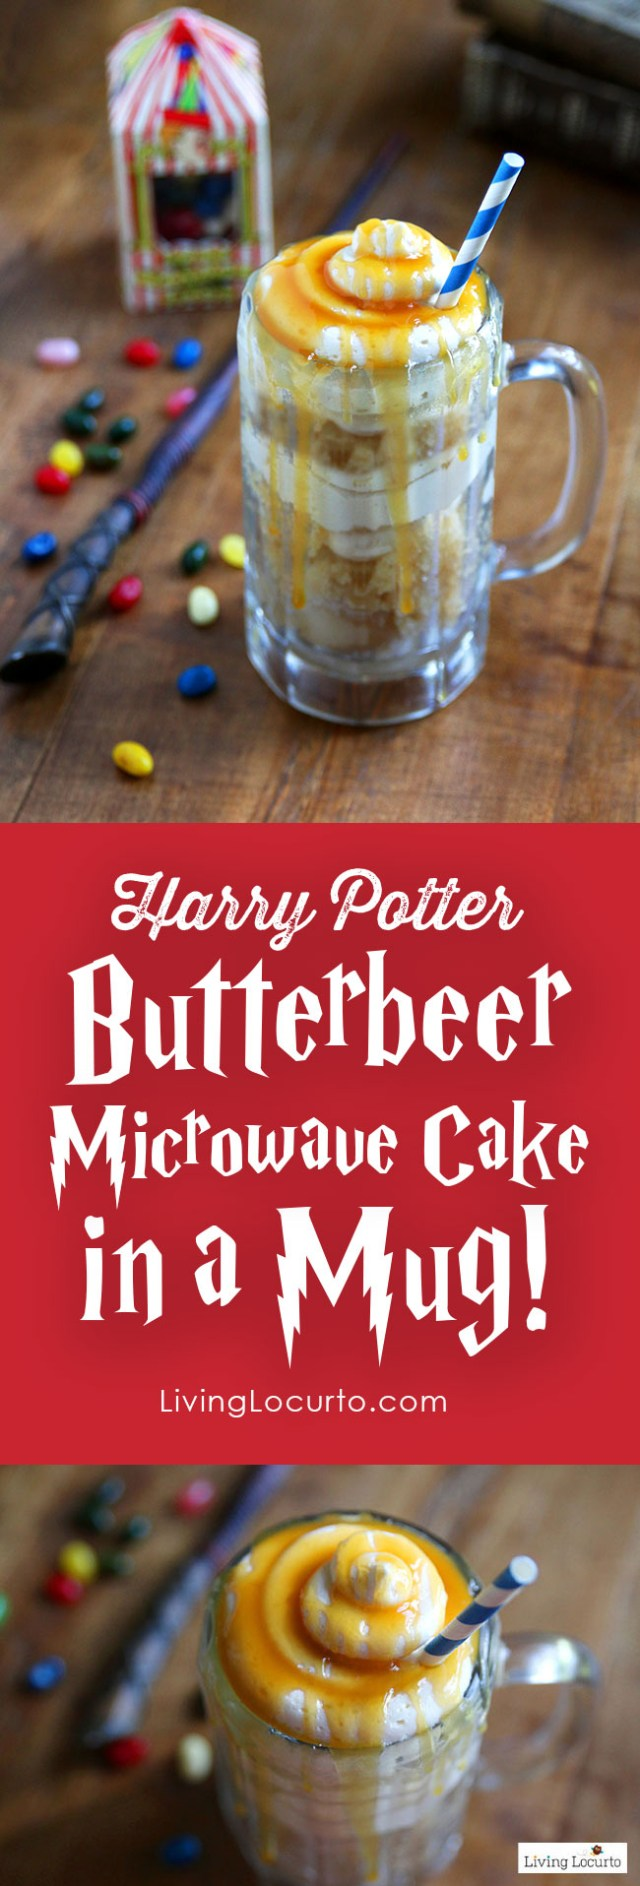 Birthday Cake In A Mug Harry Potter Butterbeer Cake In A Mug Microwave Cake Recipe